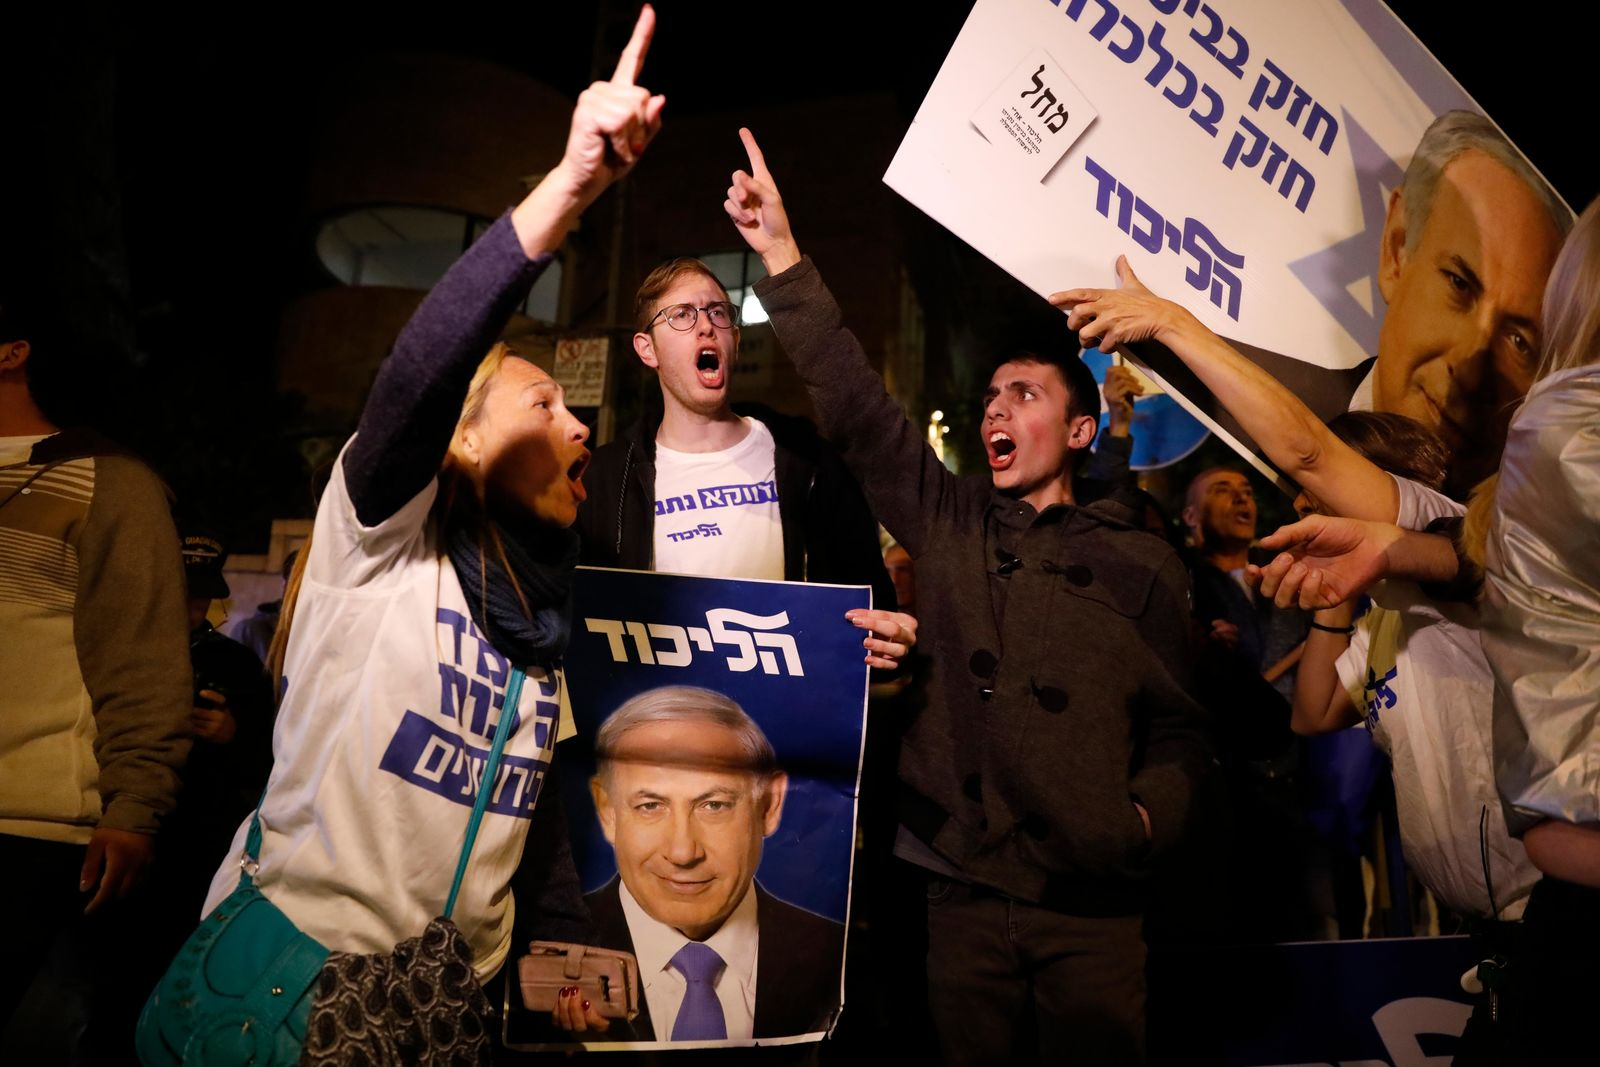 Supporters of Israeli Prime Minister Benjamin Netanyahu gather outside his residence in Jerusalem, Thursday, Nov. 21, 2019. (AP Photo/Ariel Schalit)